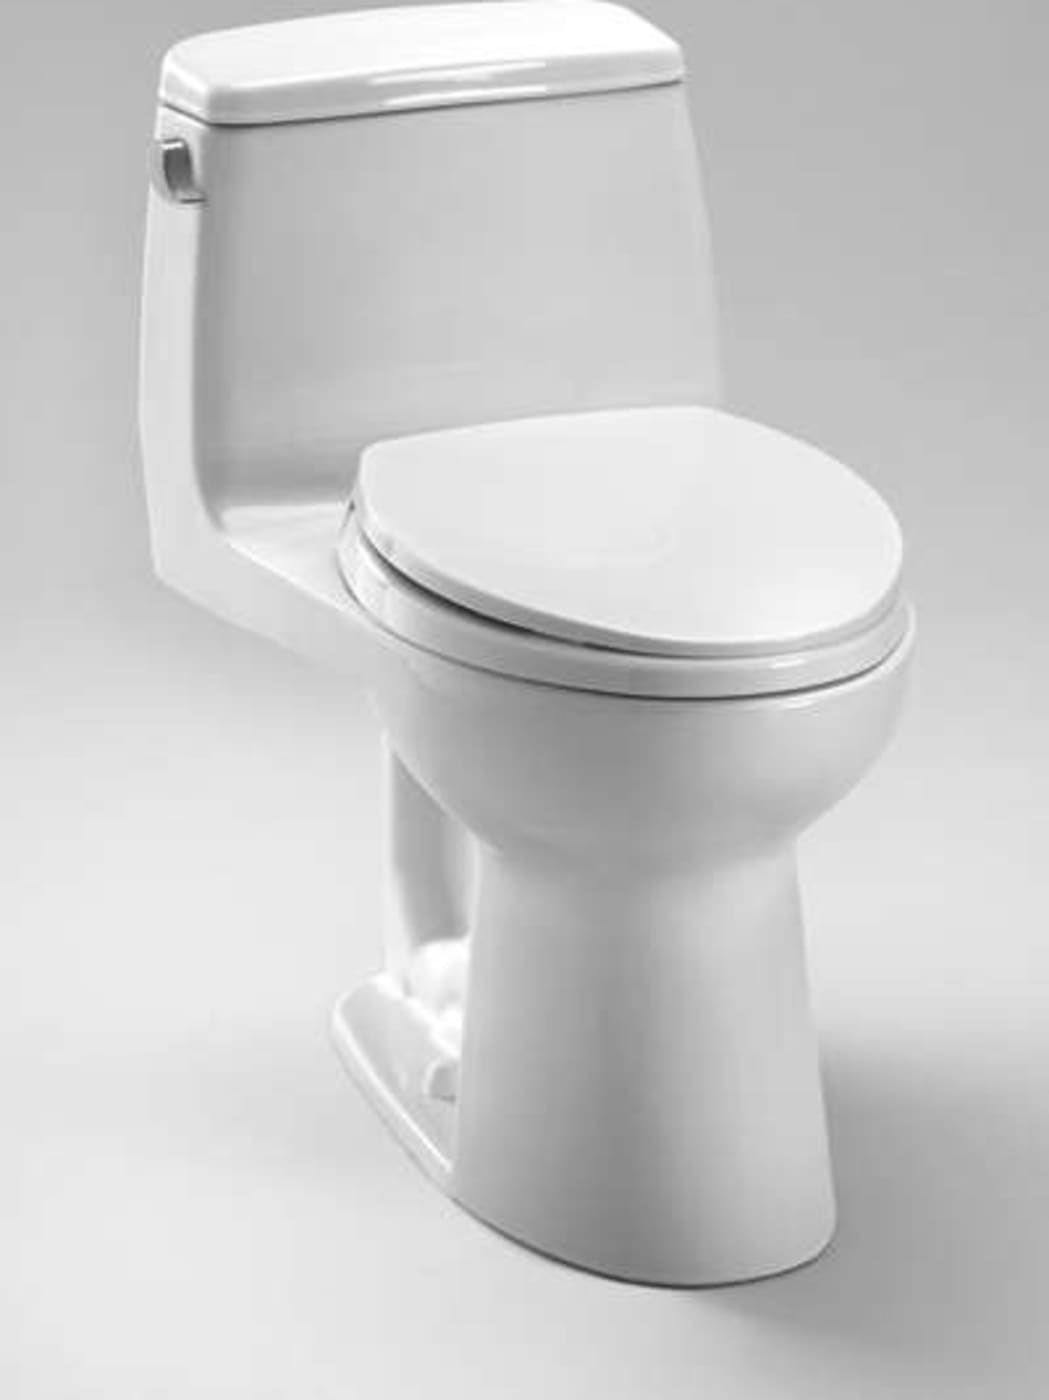 Toto Ultramax Elongated One Piece Toilet MS854114ELR#01 Cotton White ...